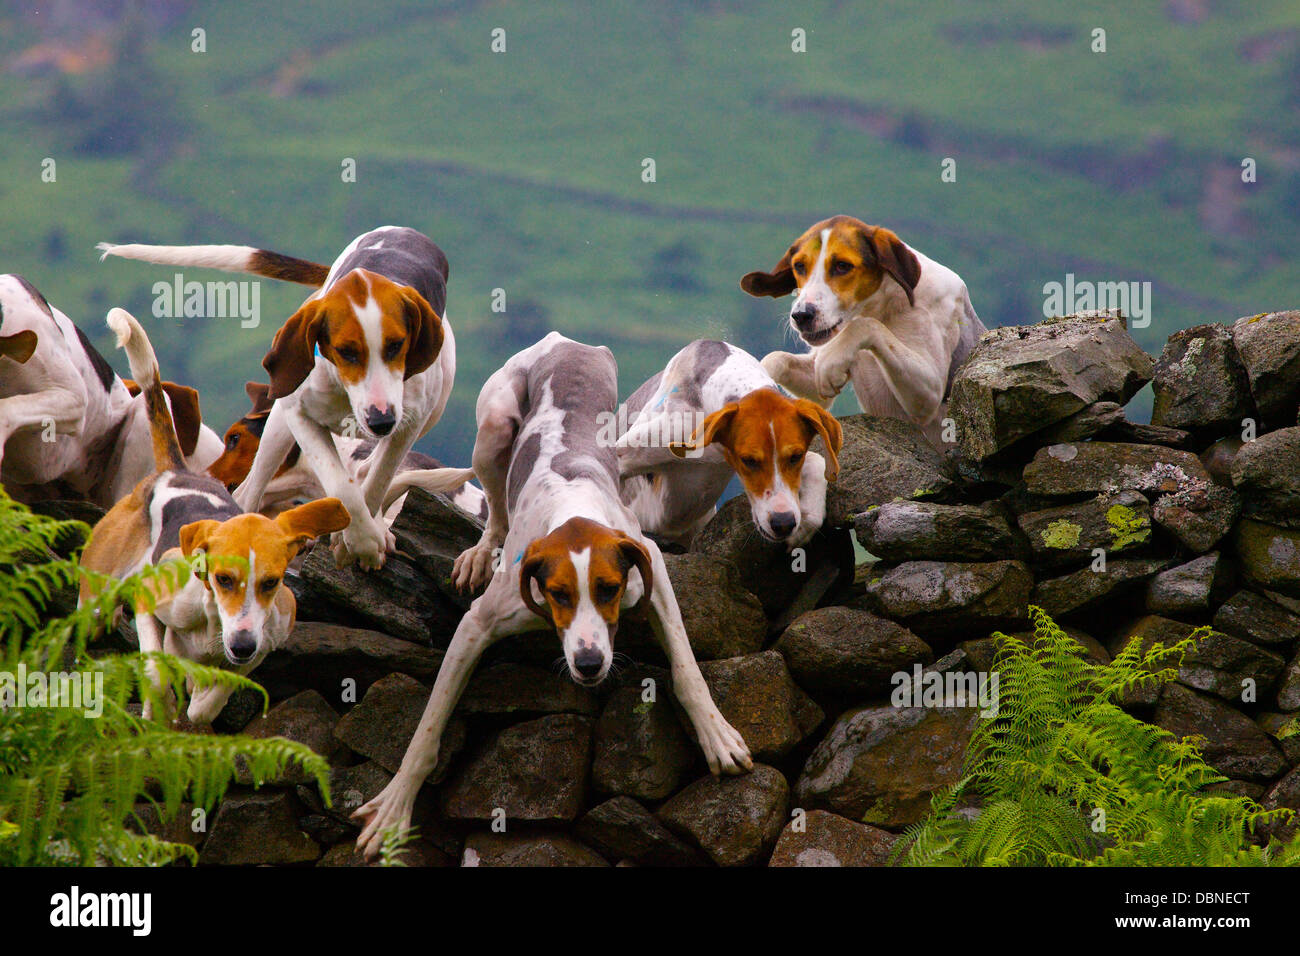 Trail Hounds jumping over a dry stone wall Ambleside Sports in The Lake District, Cumbria, England, UK - Stock Image